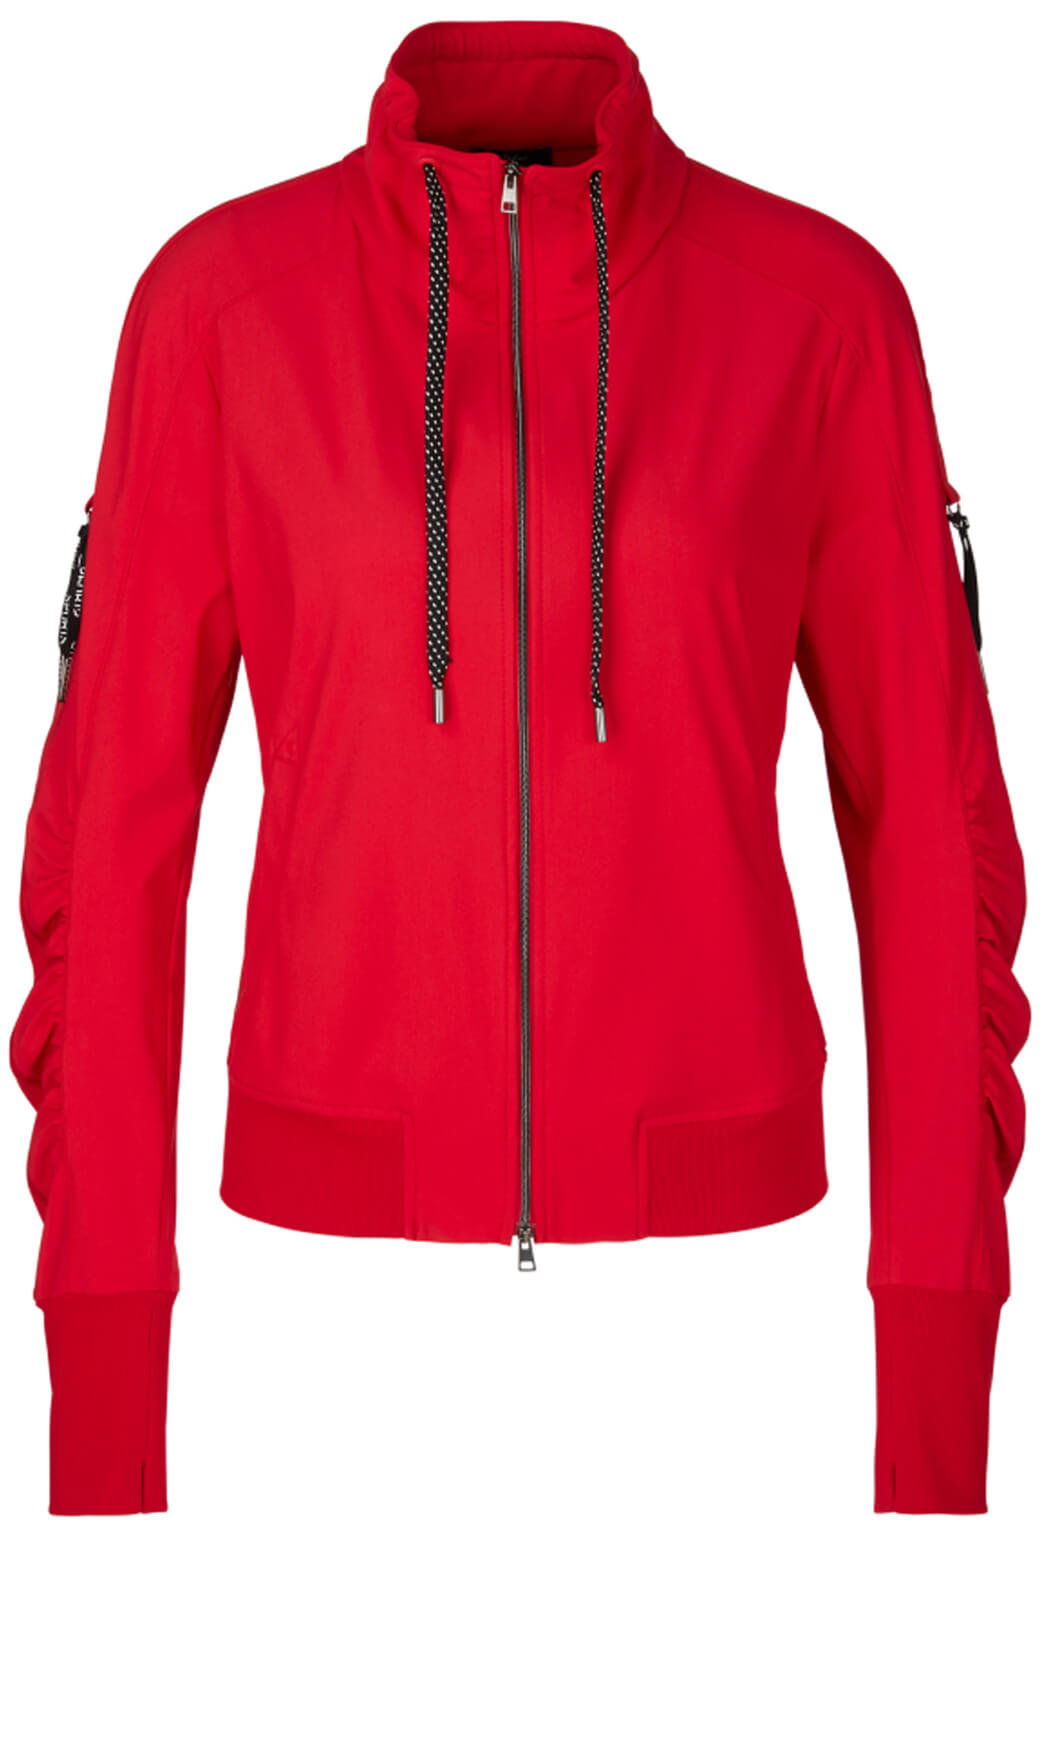 Marccain Sports Dames Vest Rood